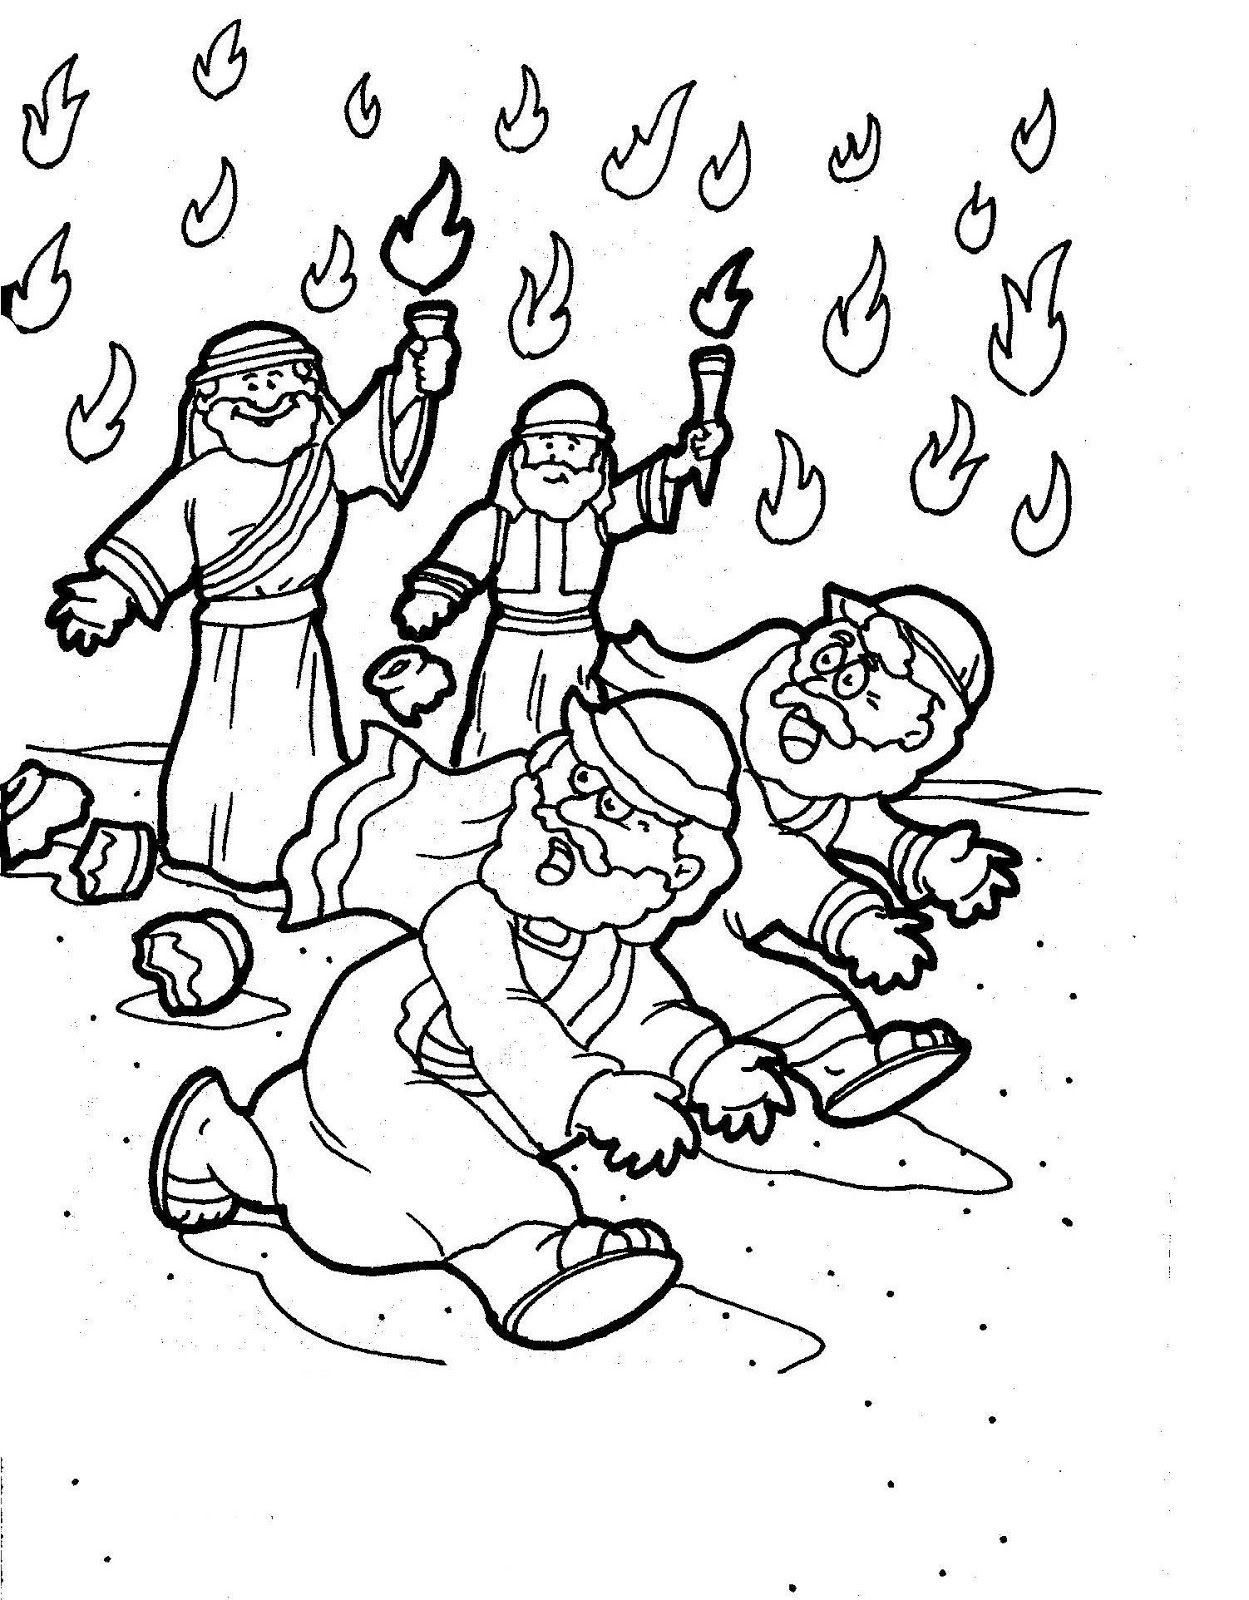 10 Coloring Page Gideon Coloring Pages Bible Coloring Pages Abc Coloring Pages